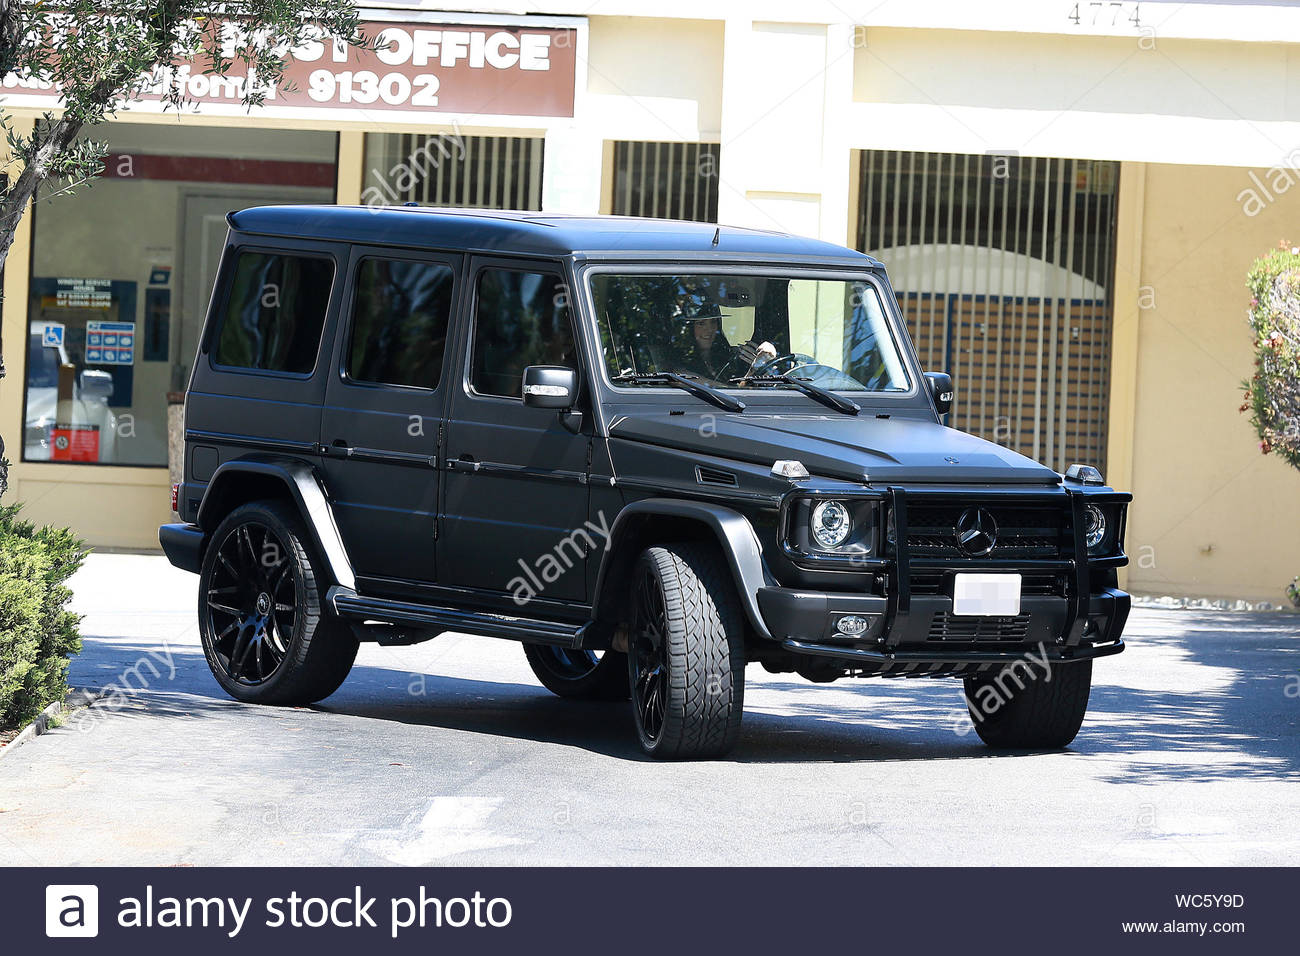 Calabasas Ca Kylie Jenner And A Friend Take To The Streets In Kylie S New Mercedes G